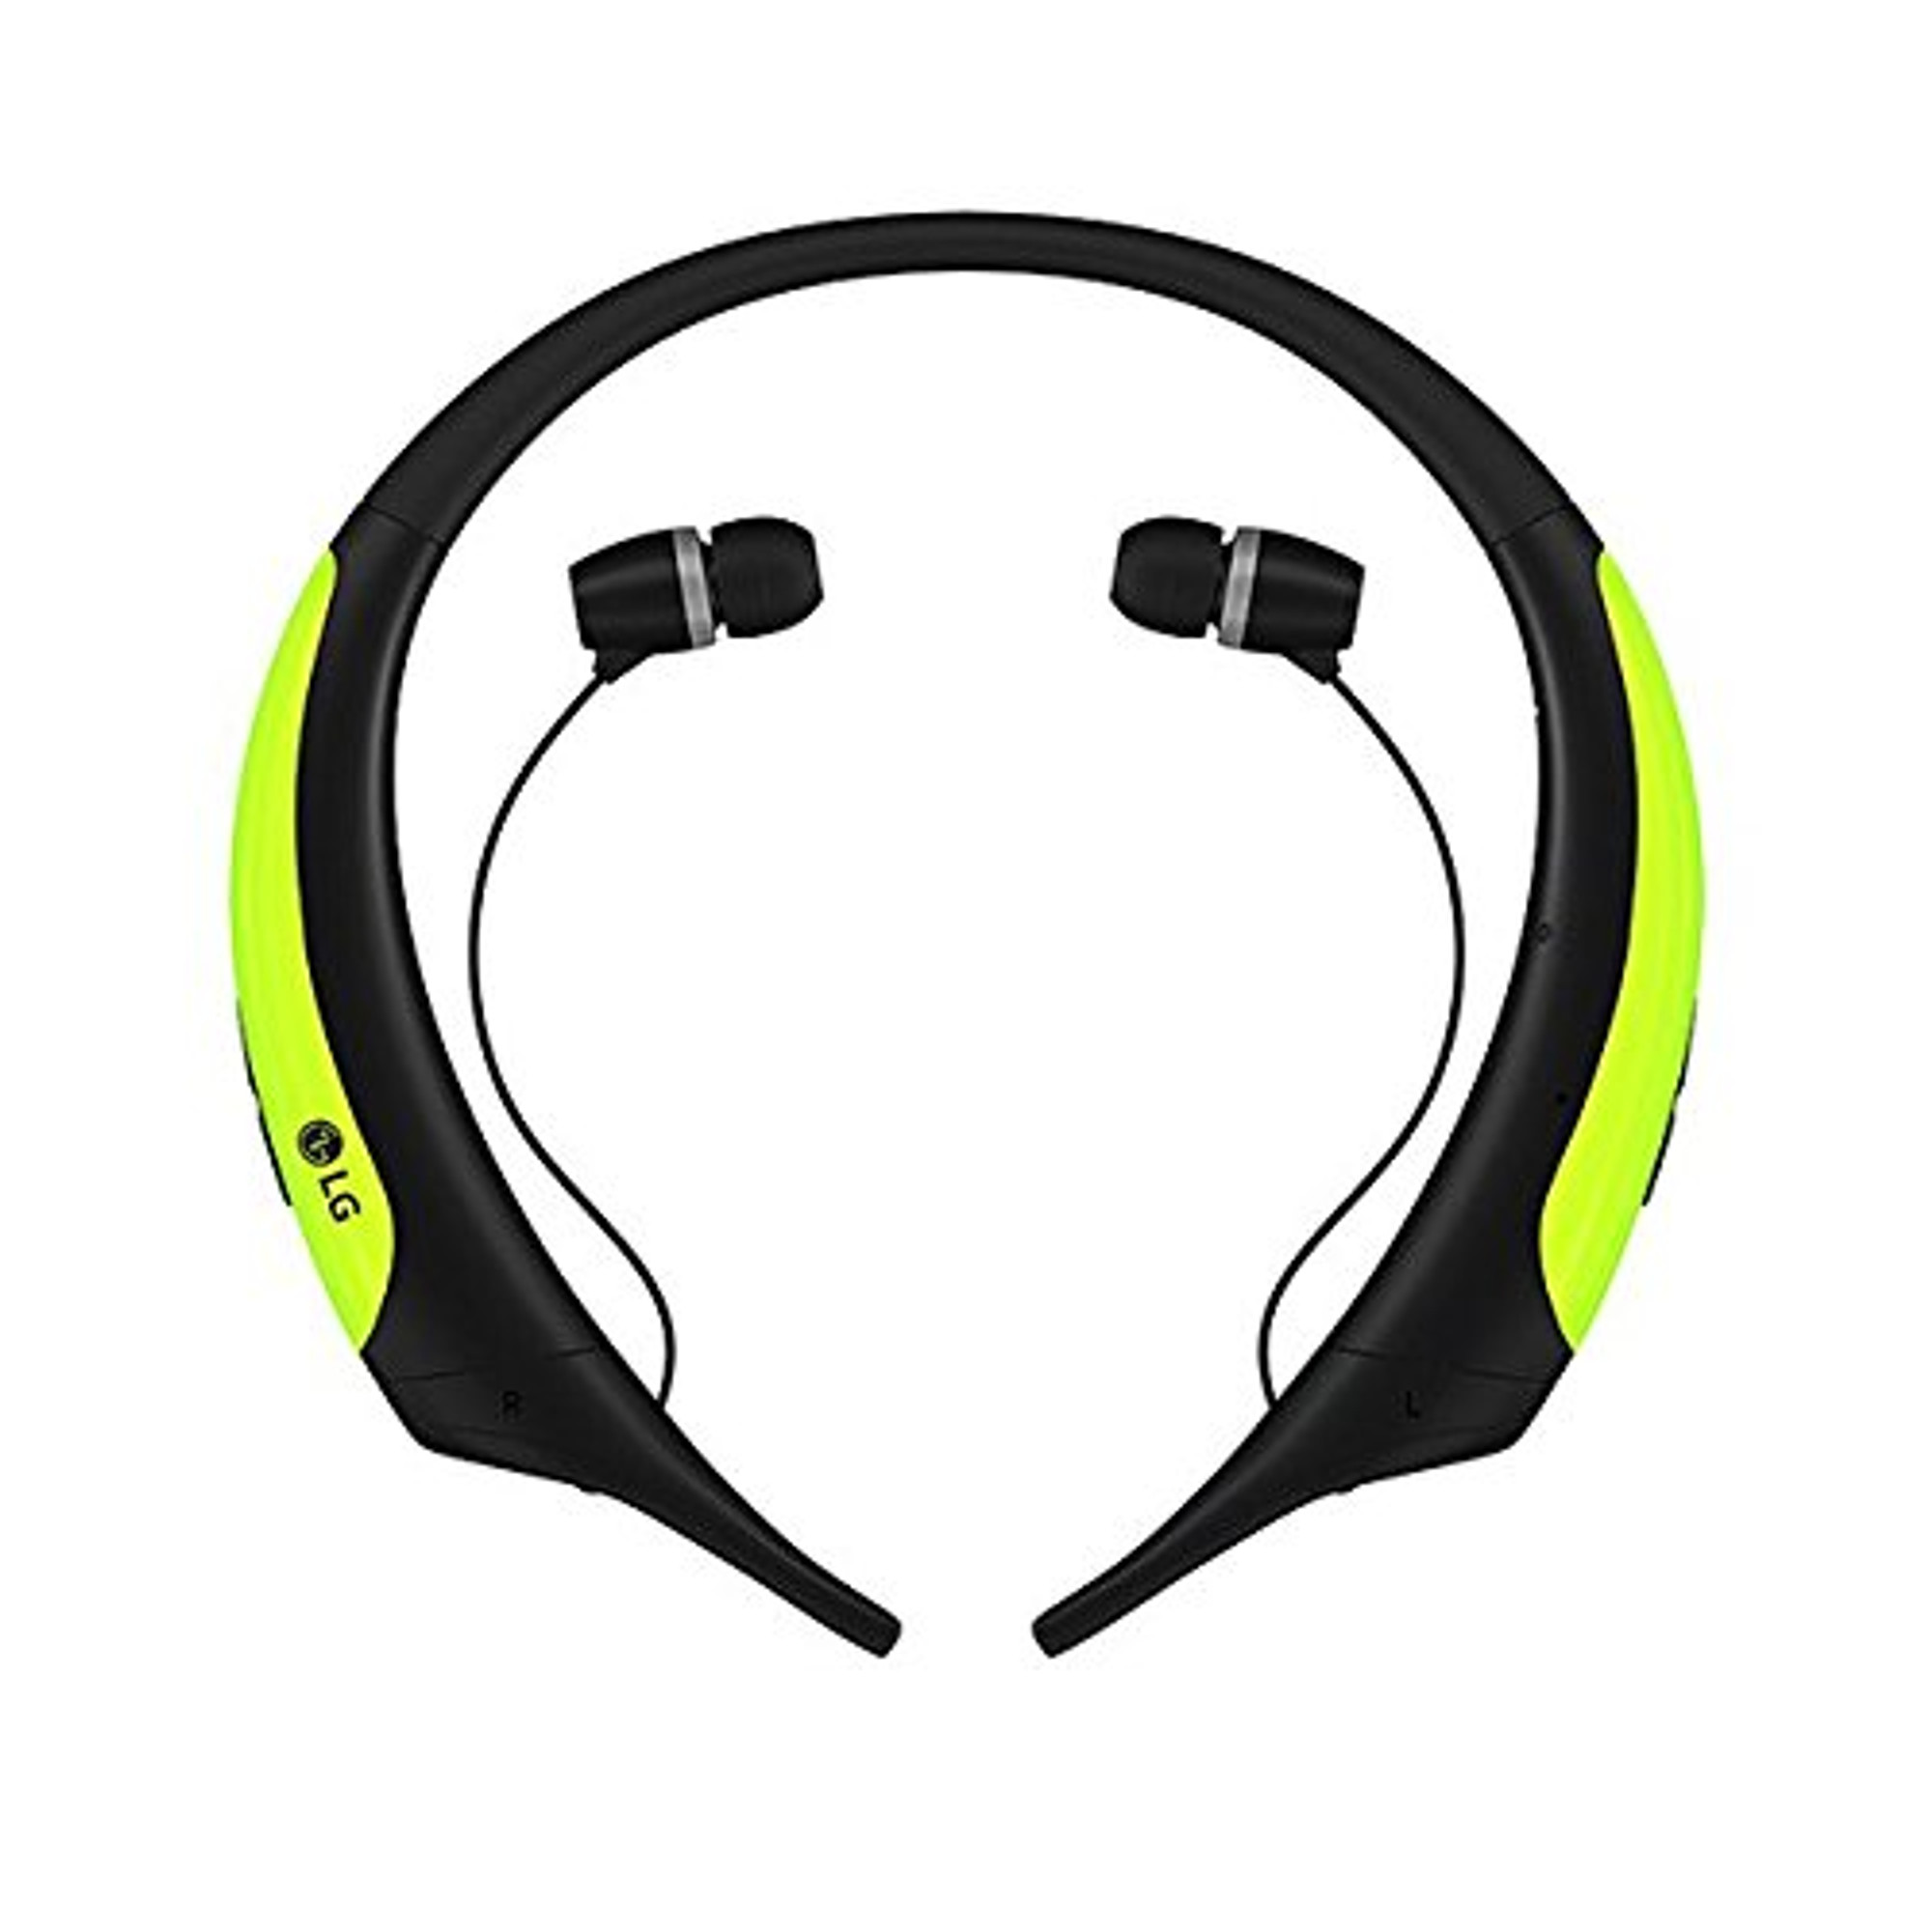 eb64f78fcb2 LG Tone Active HBS-850 Premium Wireless Headset (Lime) | Headphones SG